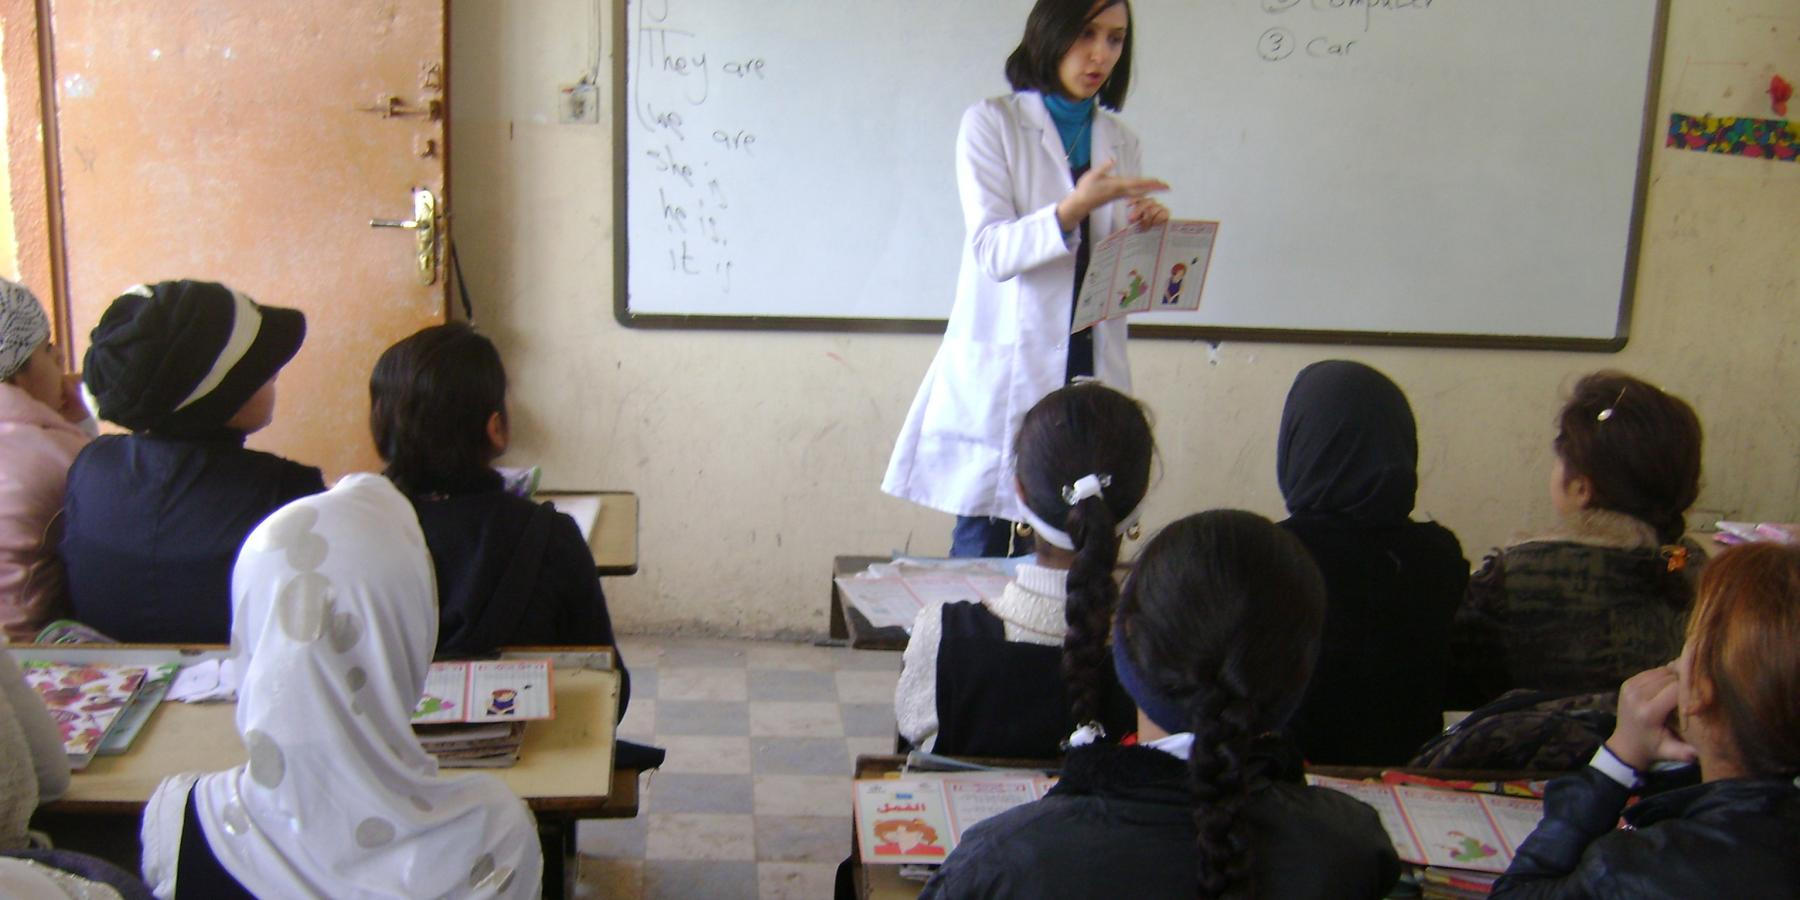 Dr. Sarah Al-Obaydi leads a health education session at a school in rural Iraq.